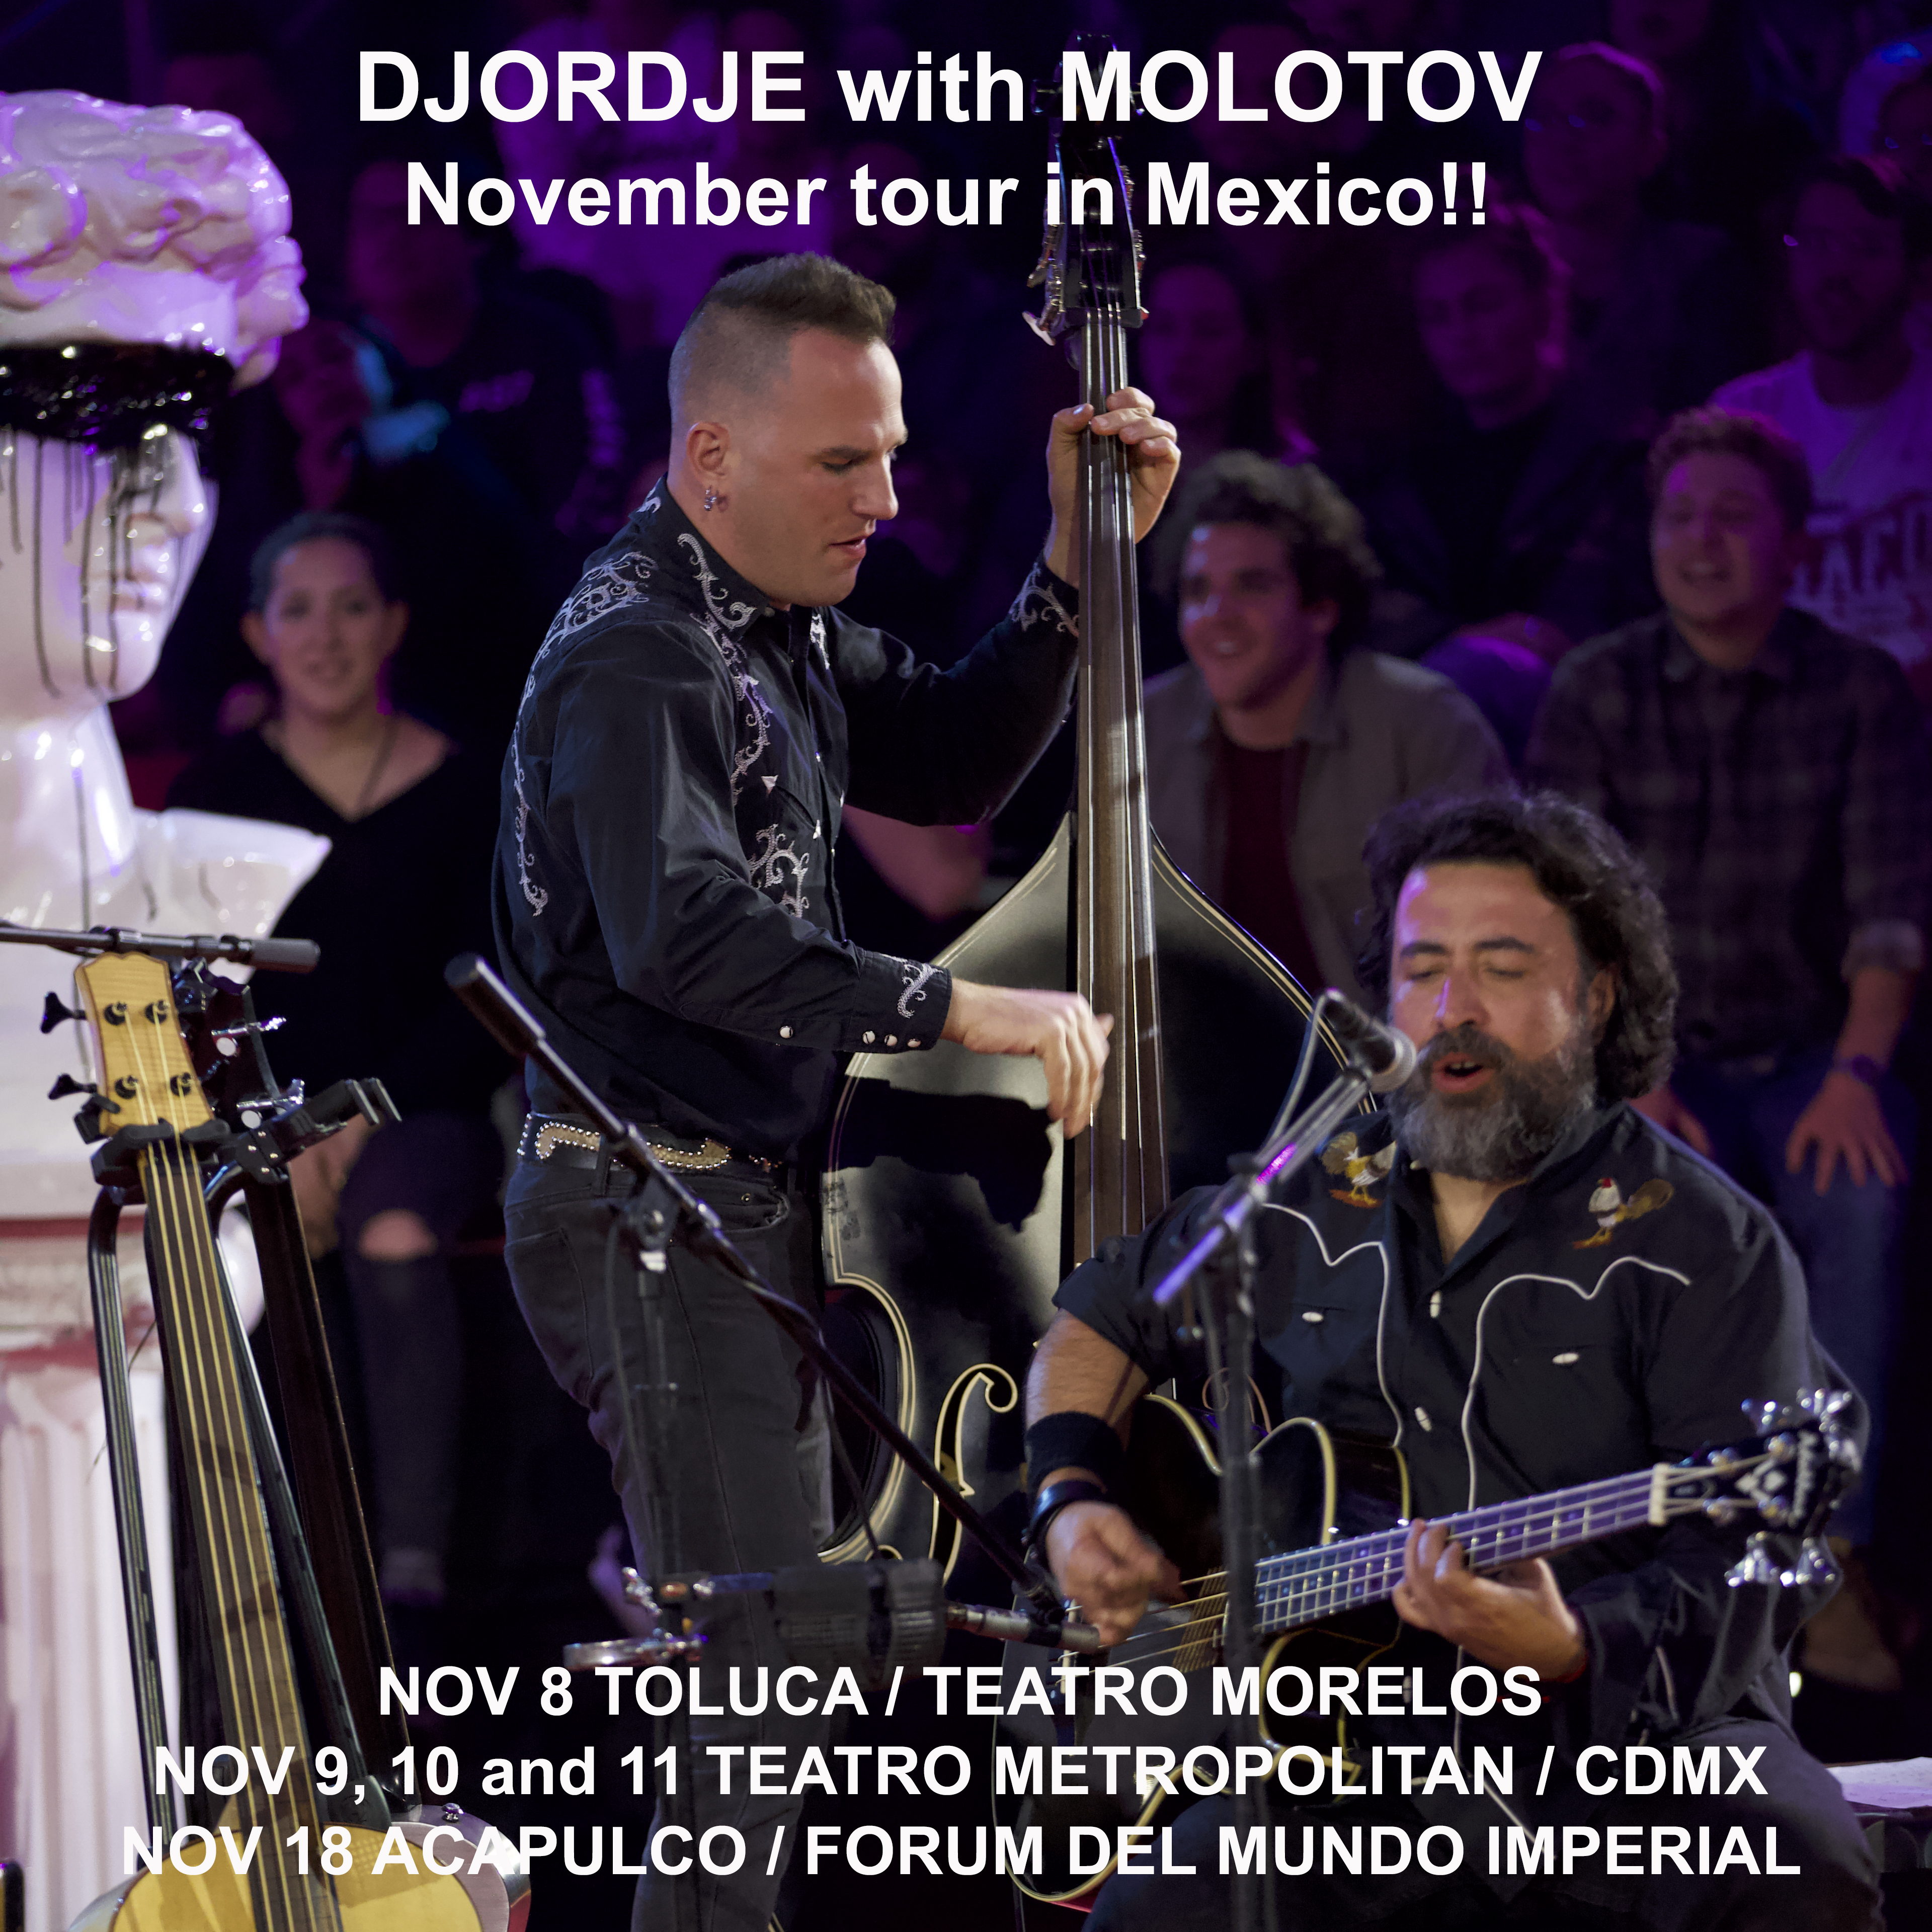 Tiger Army's bass player Djordje with Mexican band Molotov on tour